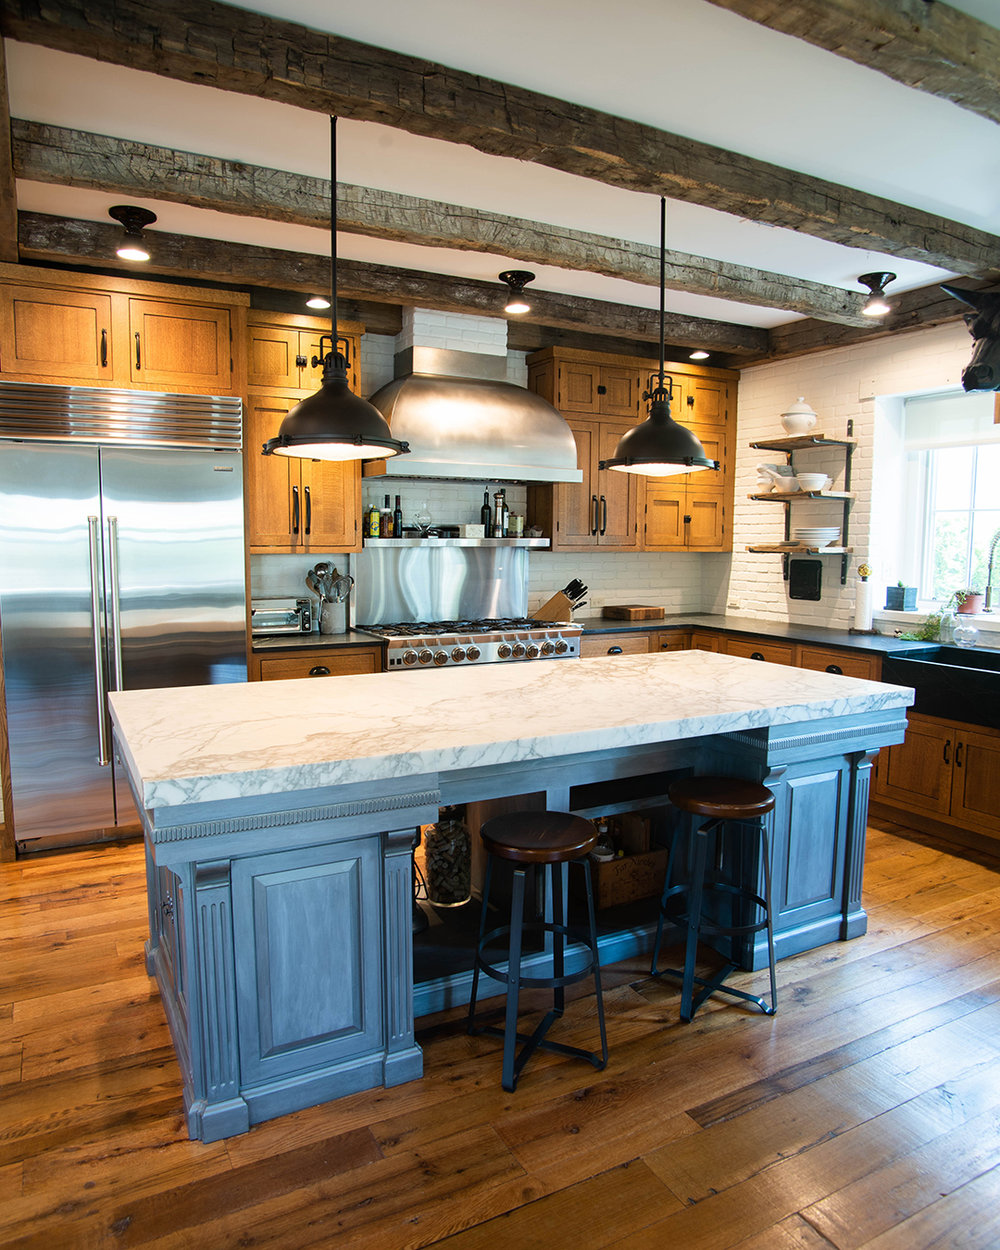 American Classic Flooring with Reclaimed Beam Skins